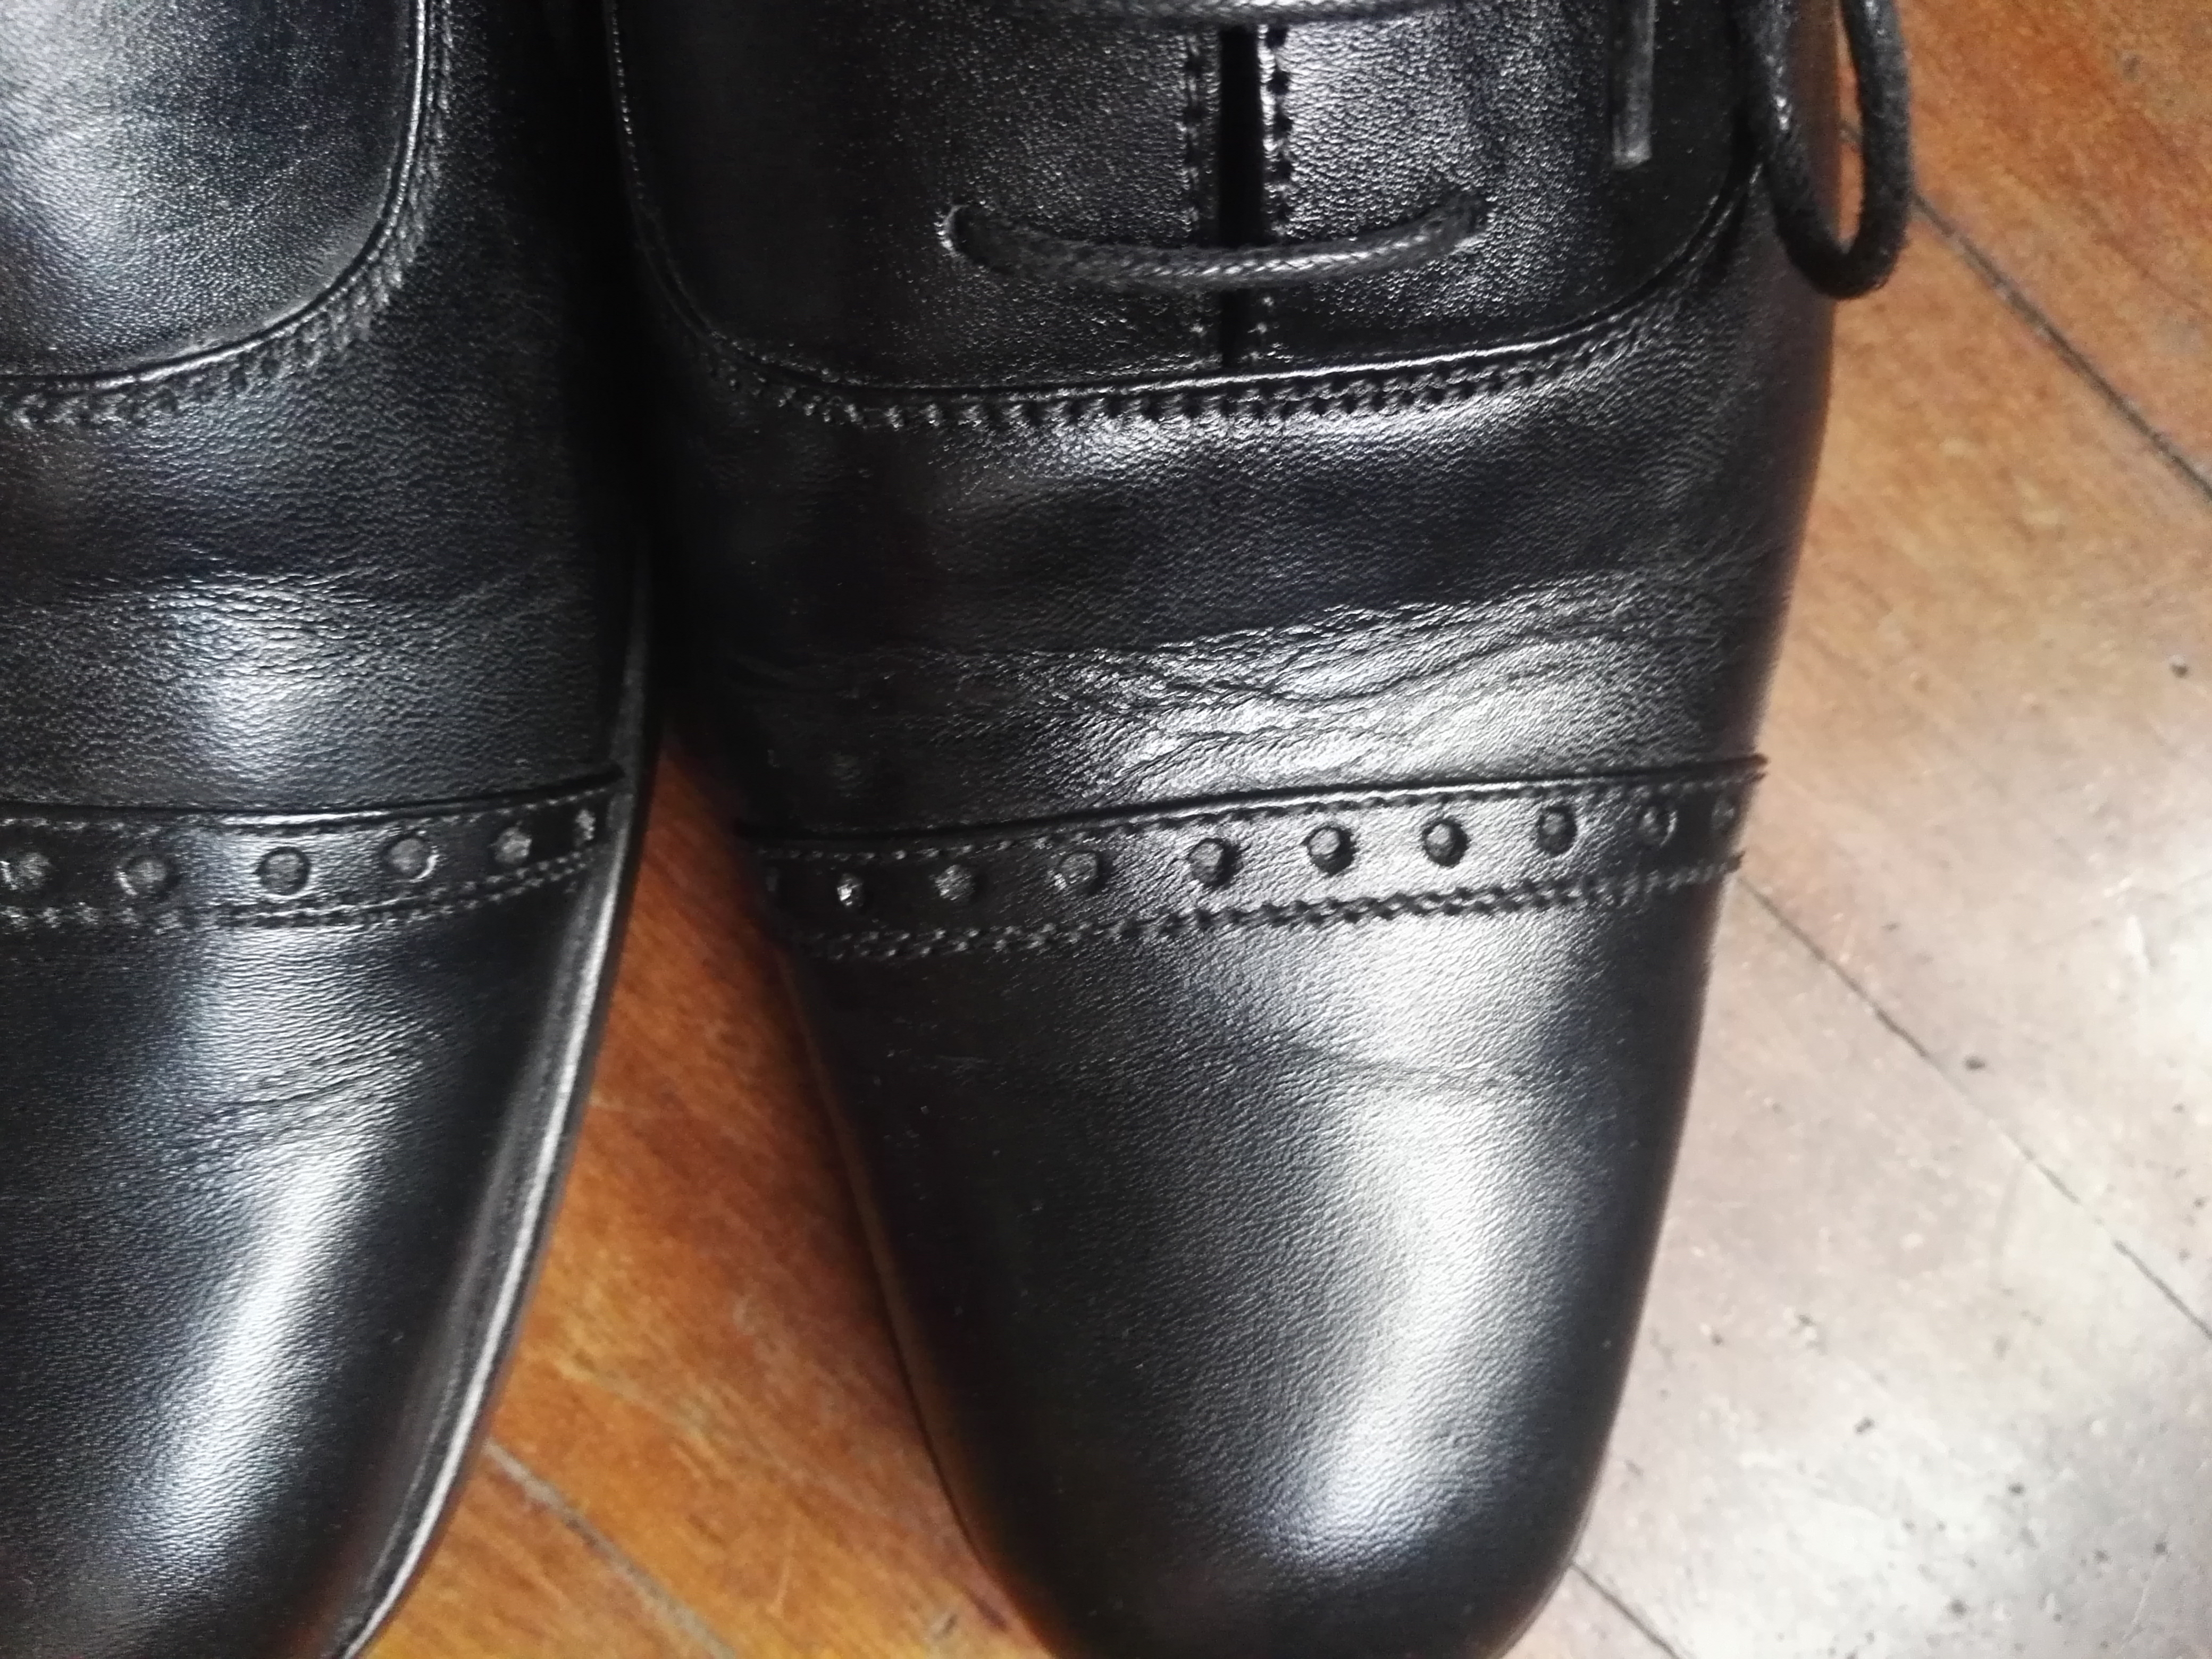 82336b17419a8 Bad creases in shoes after one wear | Styleforum